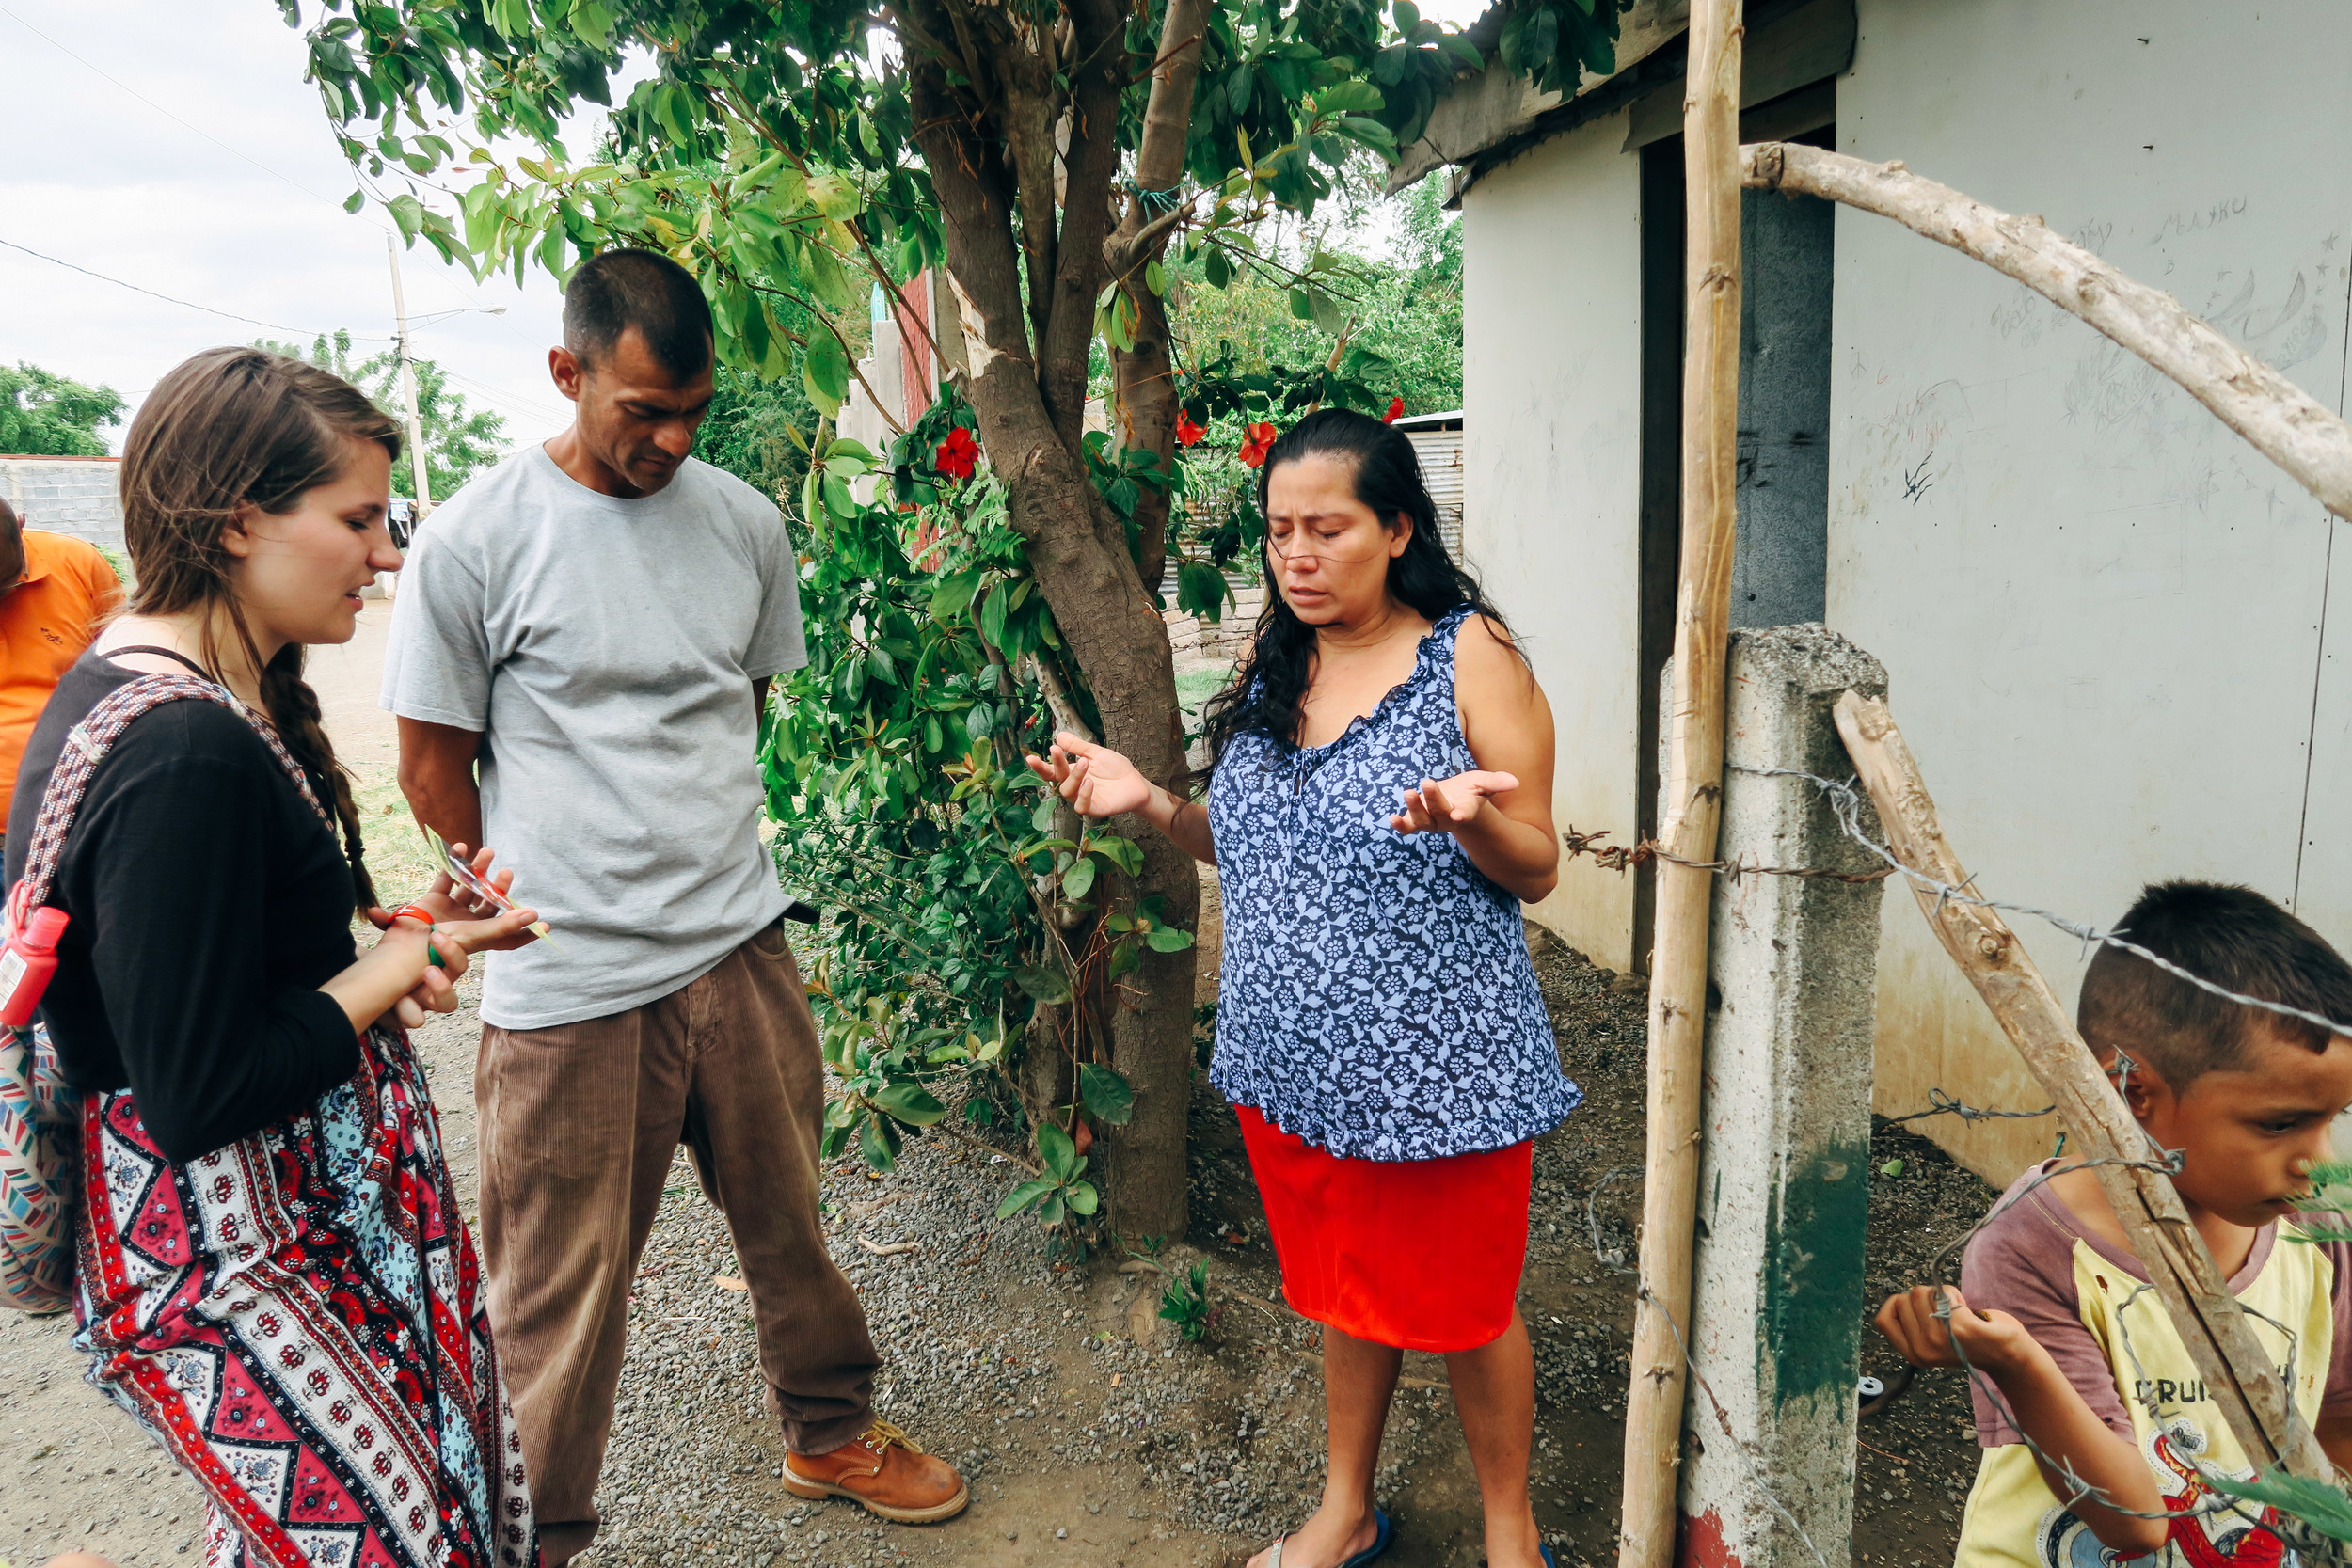 Evangelizing +Praying for individuals in Tipitapa. Our goal of this mission trip was outreach in the community, now it's the church's job to disciple these precious people.